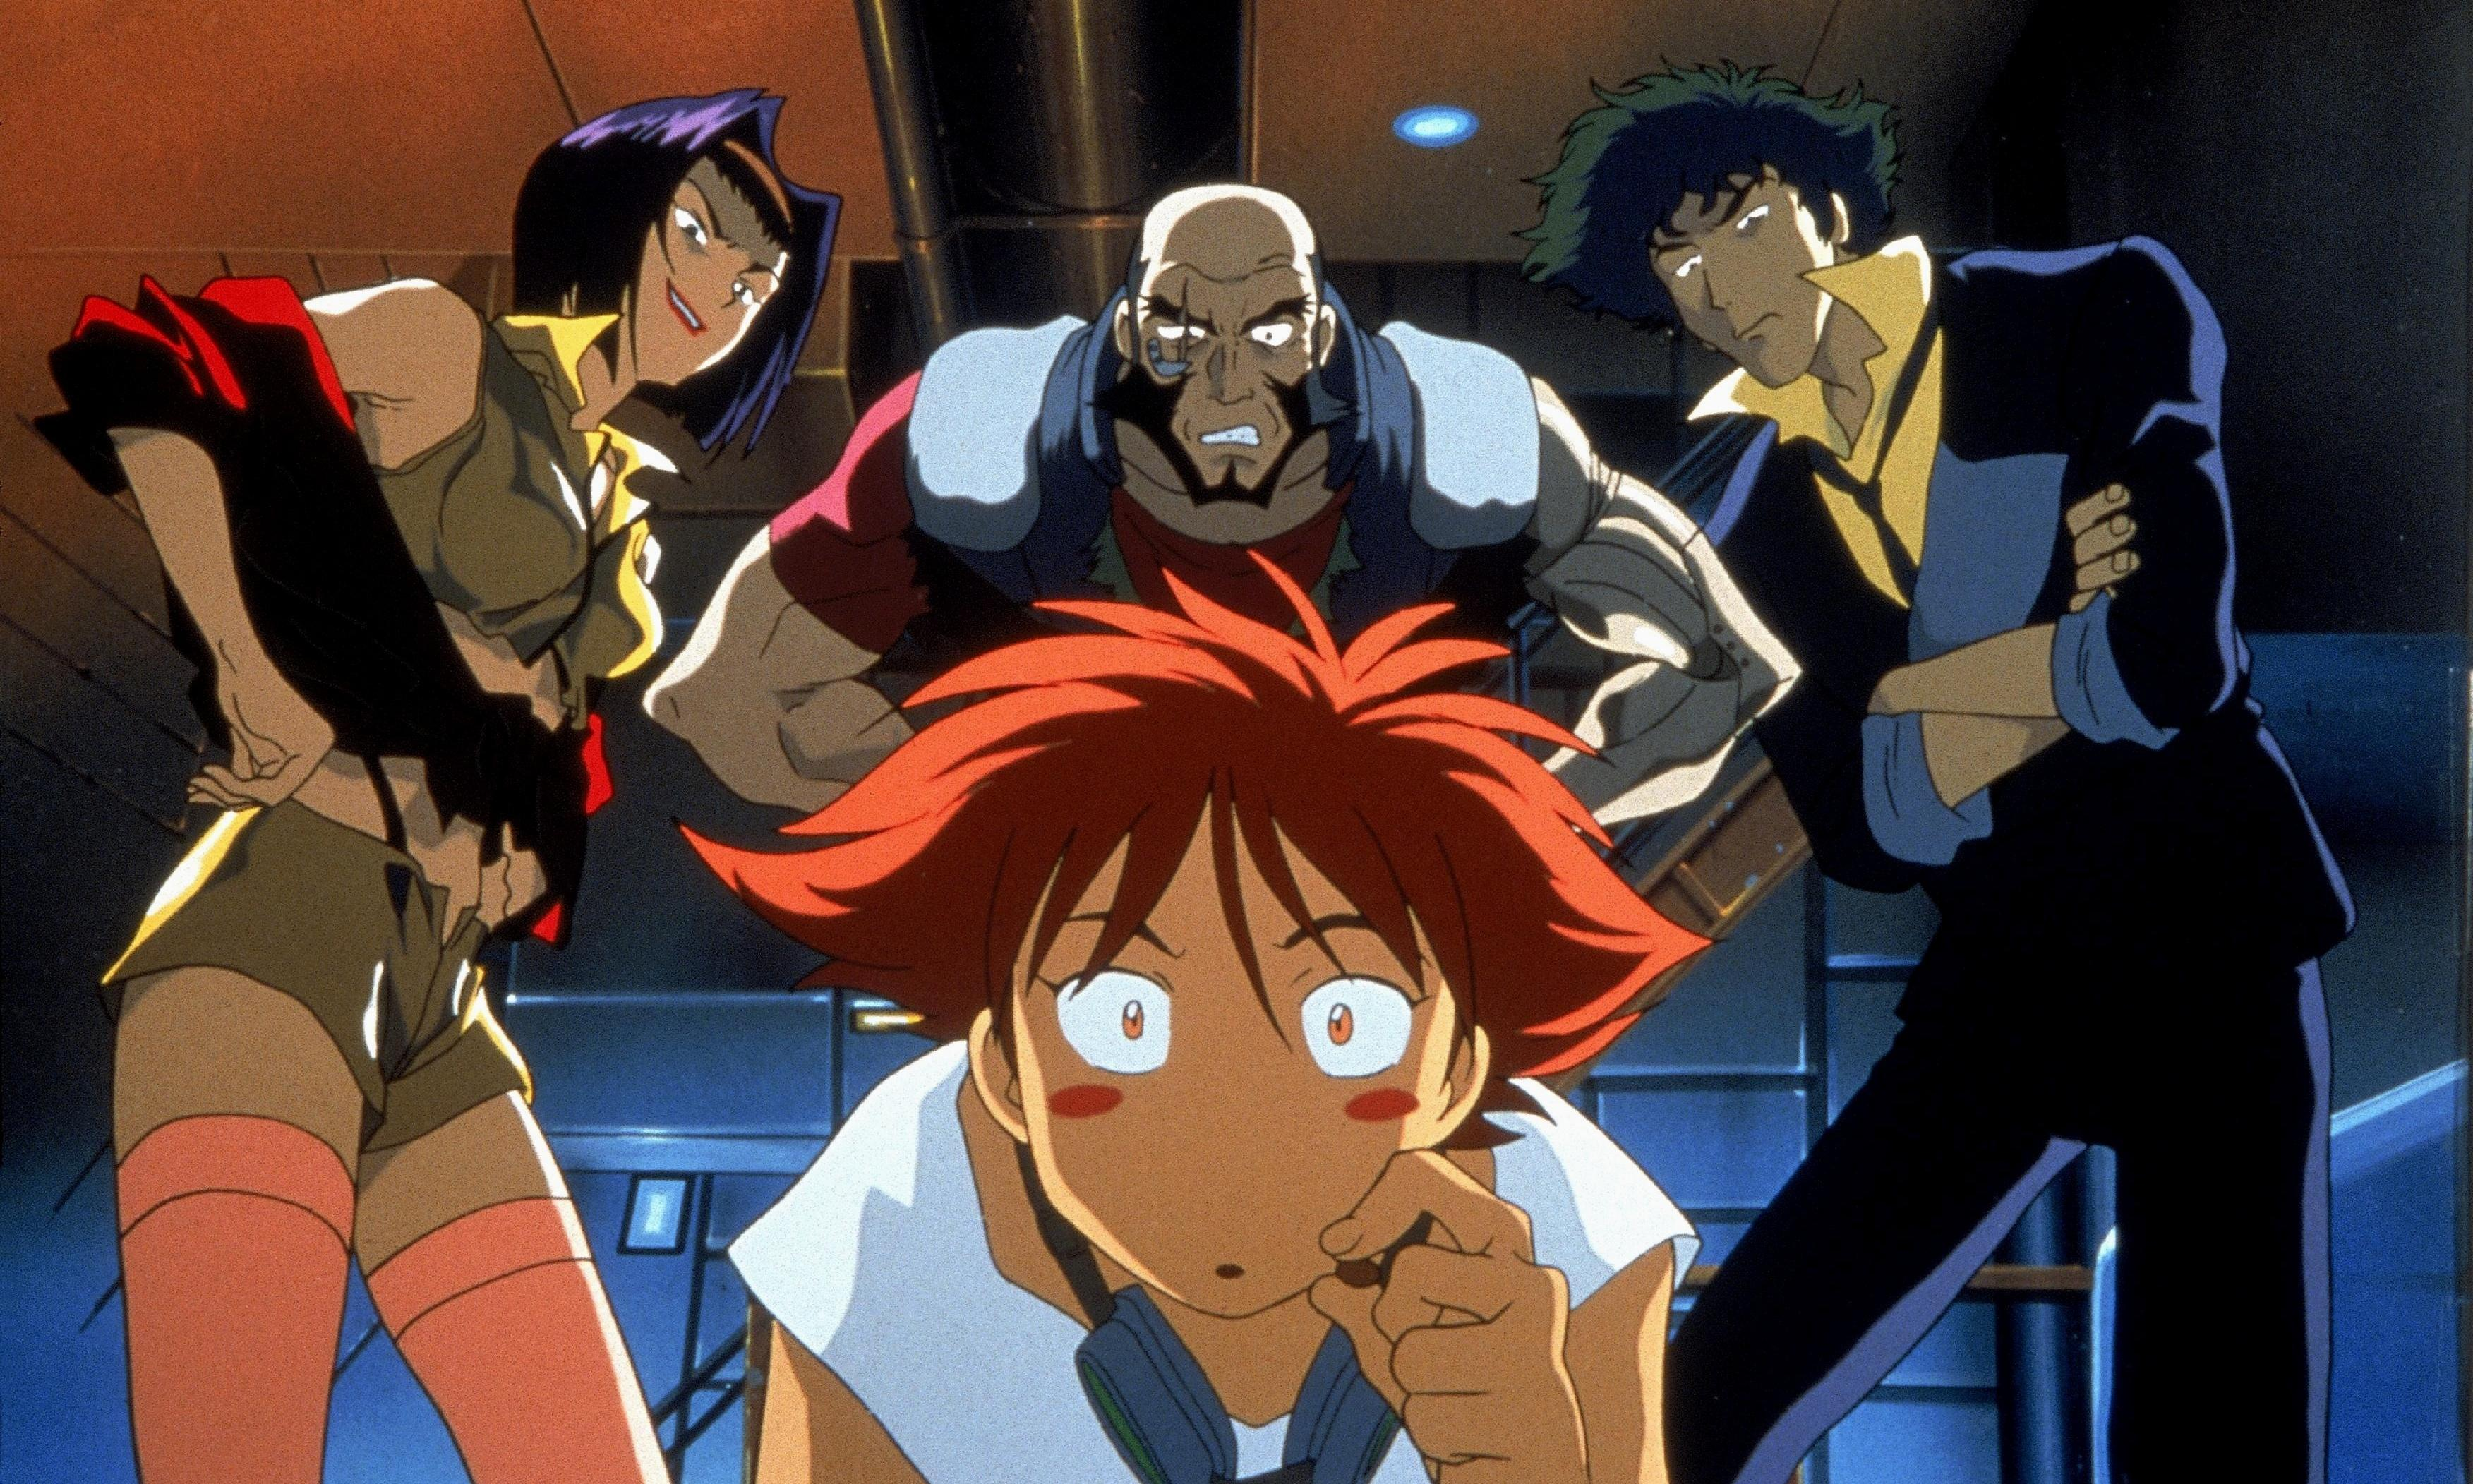 Cowboy Bebop remake: please Netflix, keep the anime classic wild and raw